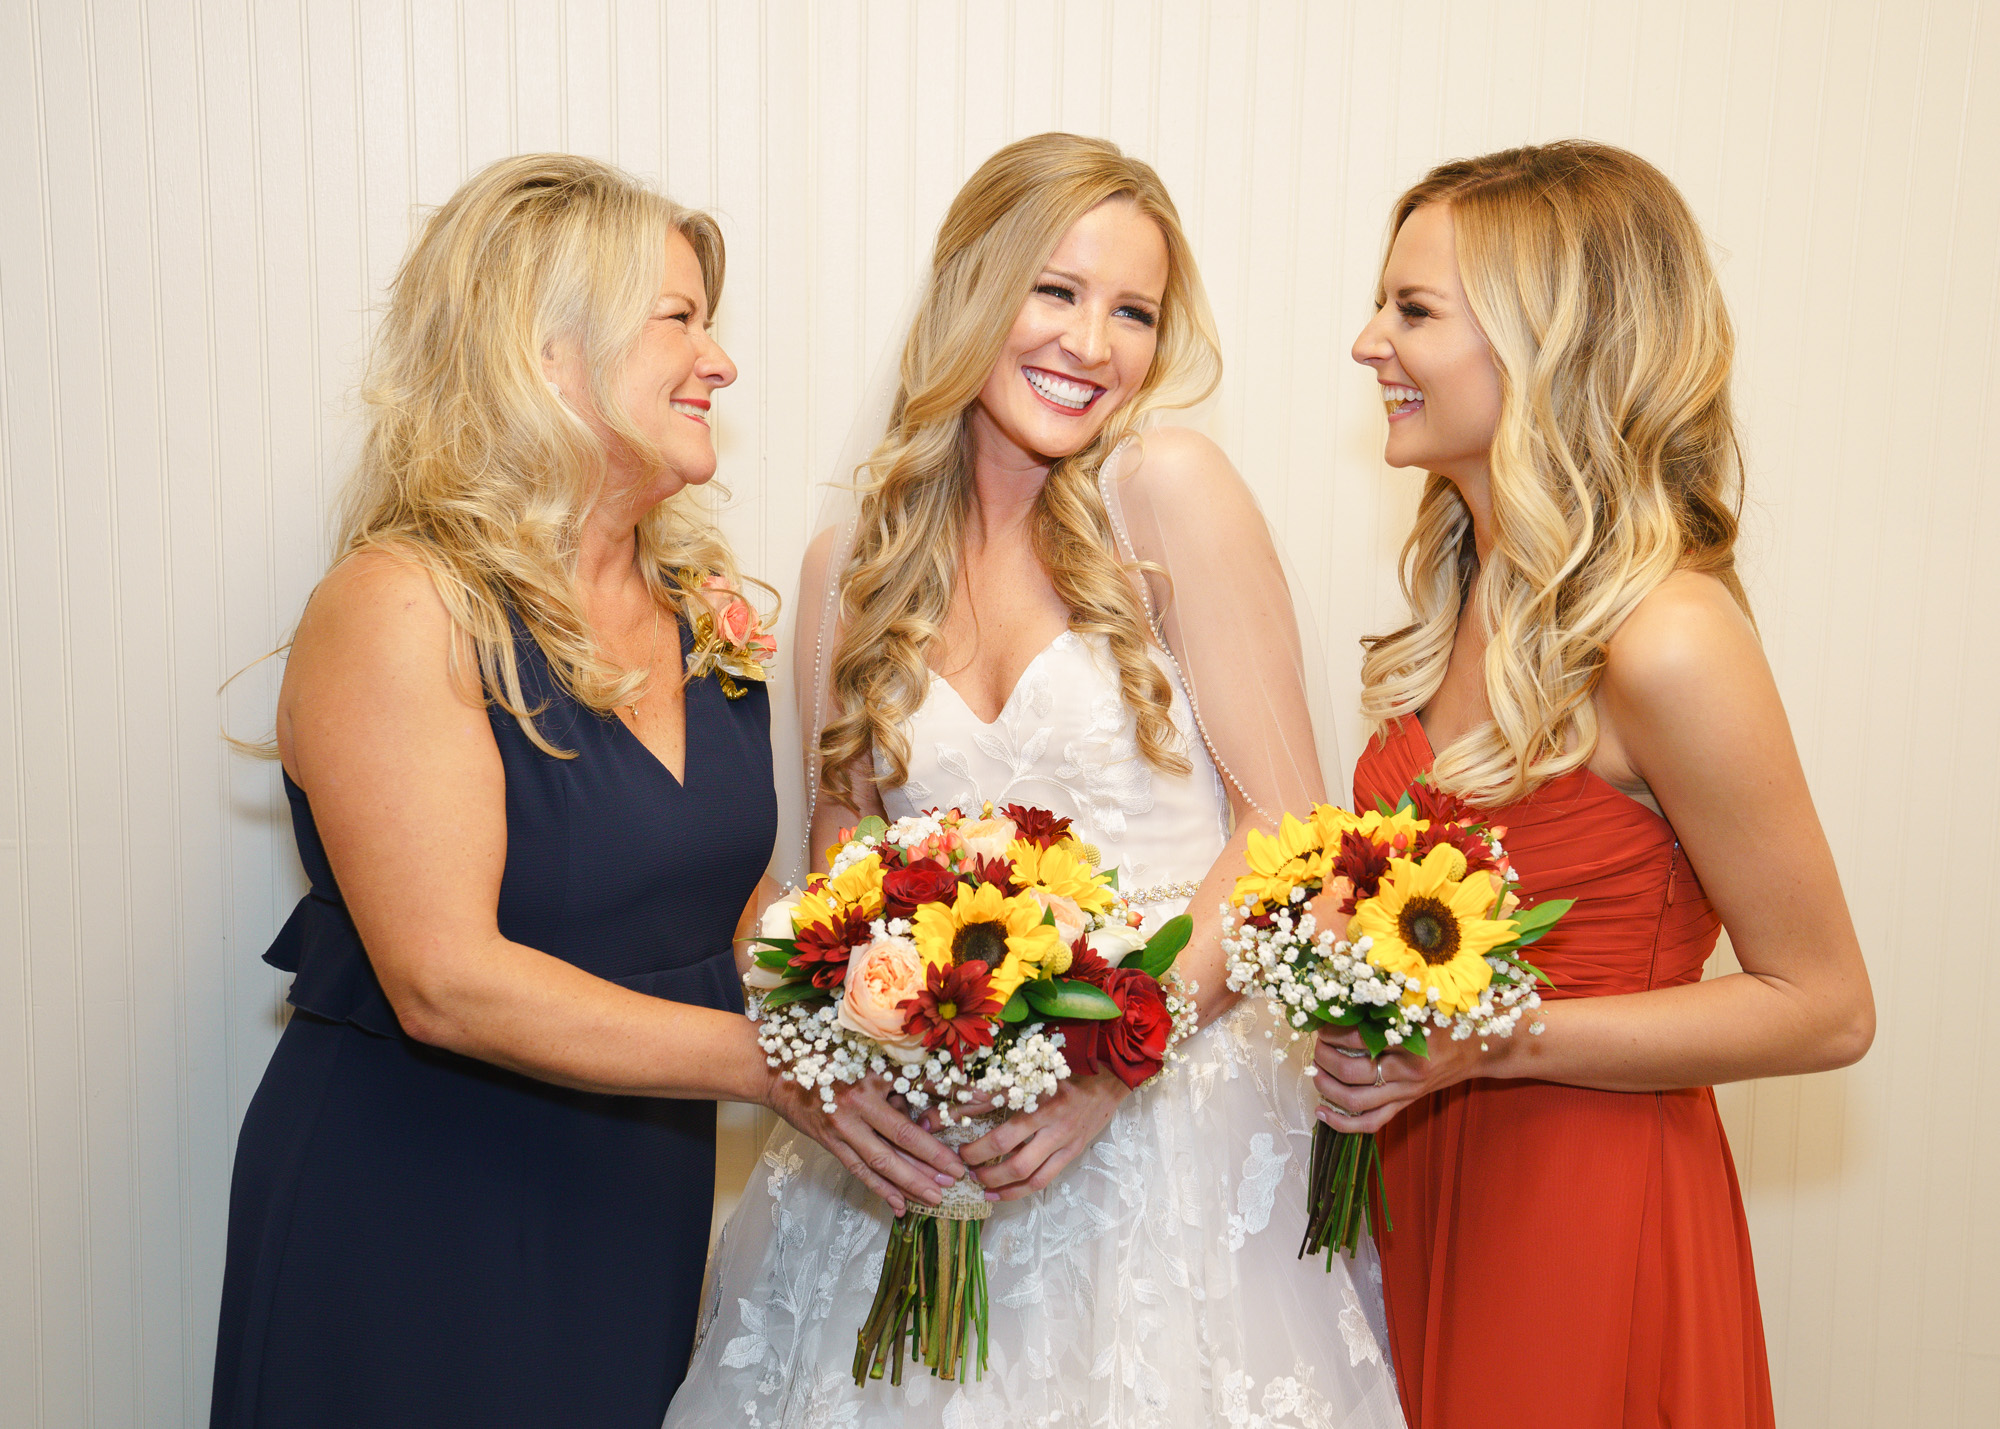 mother and sister with bride image